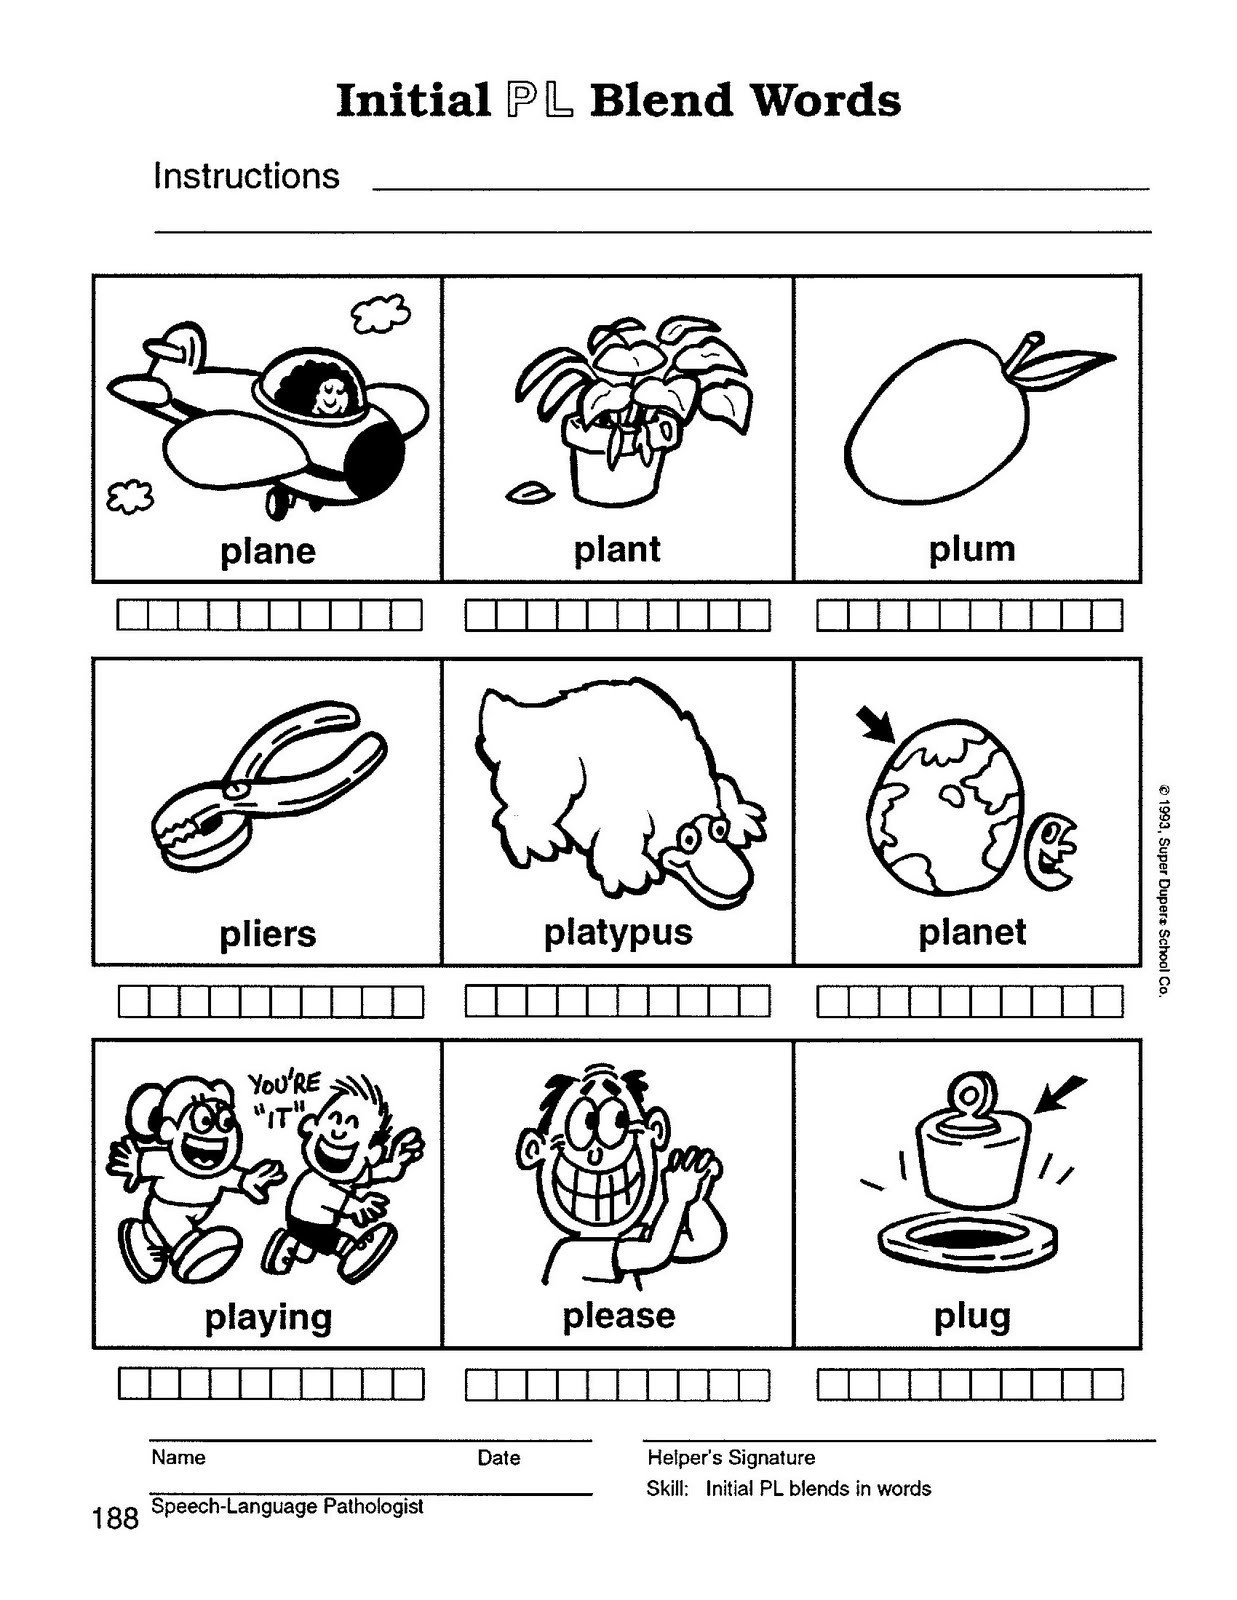 L Blends Worksheets for Kindergarten Dui therapy Worksheets